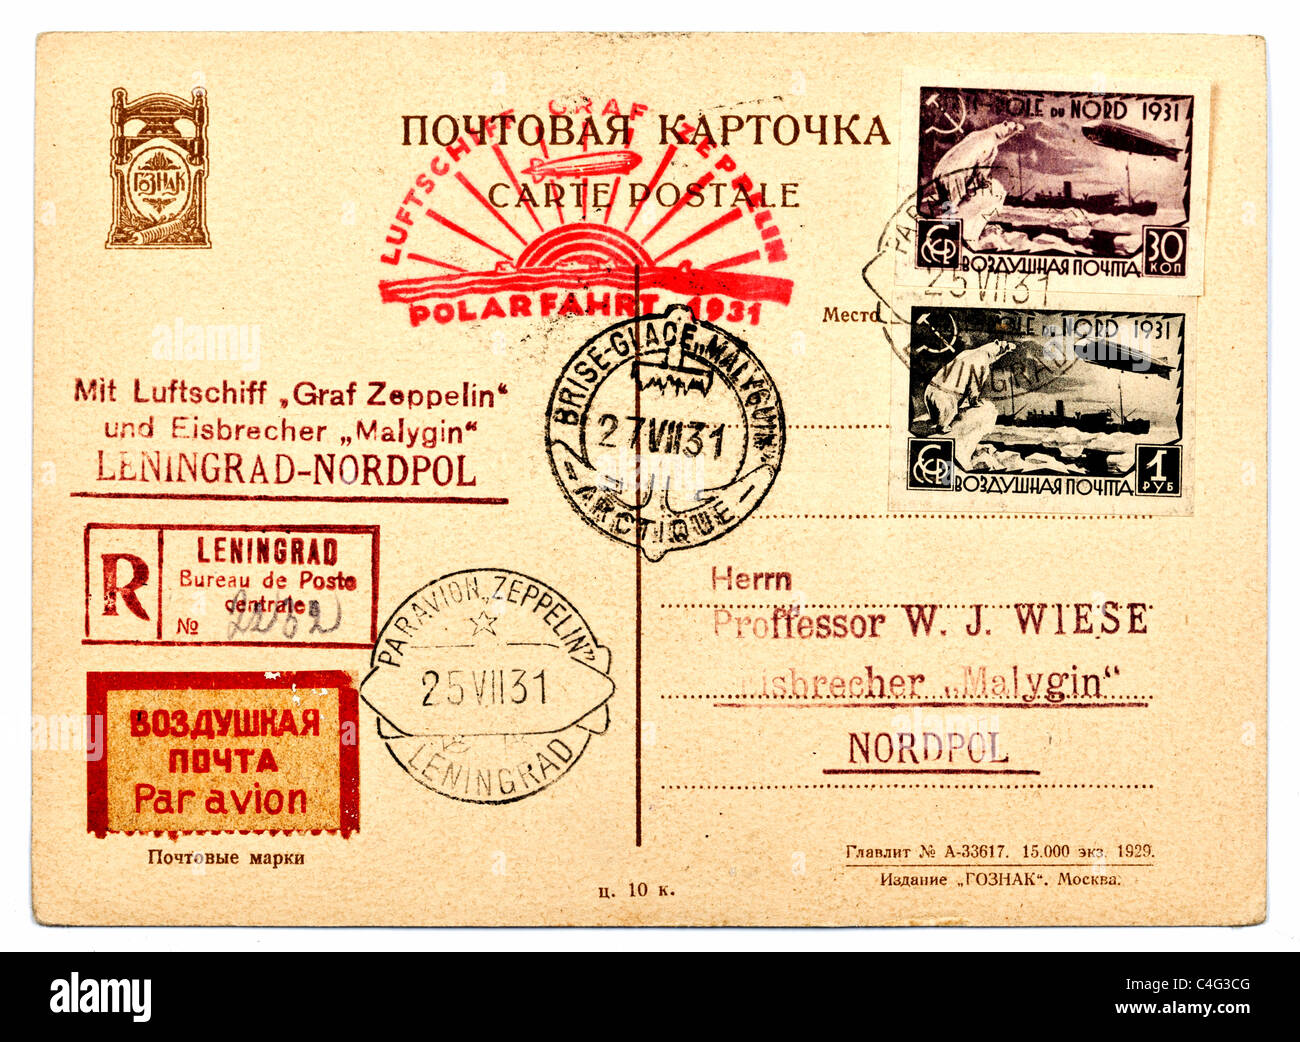 Reverse side of a vintage postcard sent to the addressee on the North pole from Leningrad stamped 25.8.1931 by Graf - Stock Image